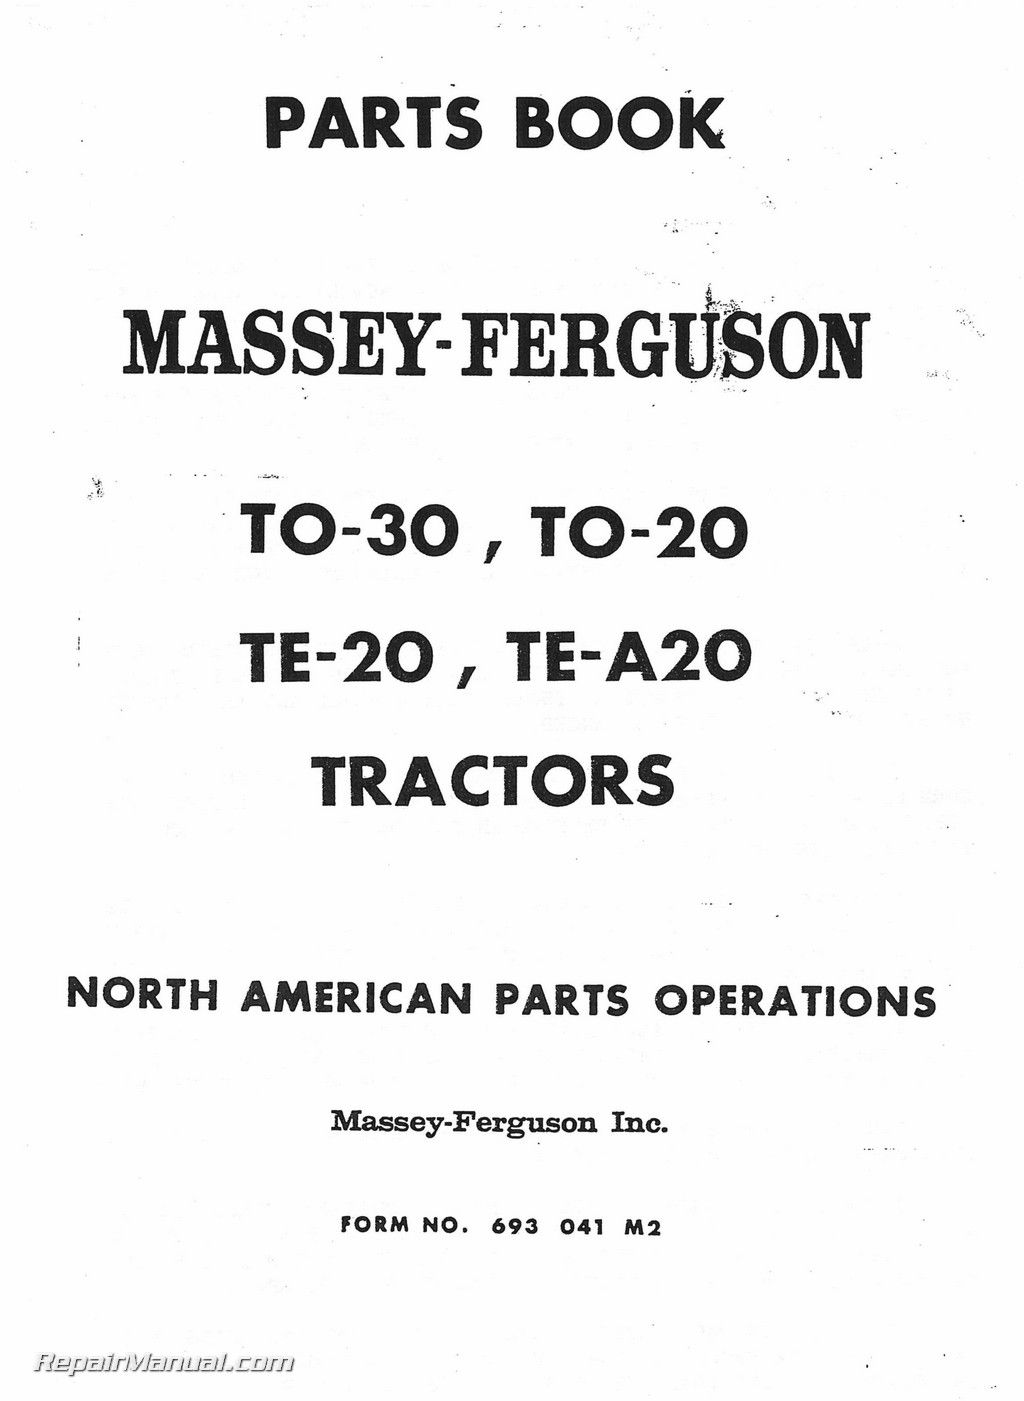 medium resolution of this massey ferguson to 30 to 20 te 20 tea 20 factory parts manual is a reproduction of the original out of print book this book is printed in two sectio